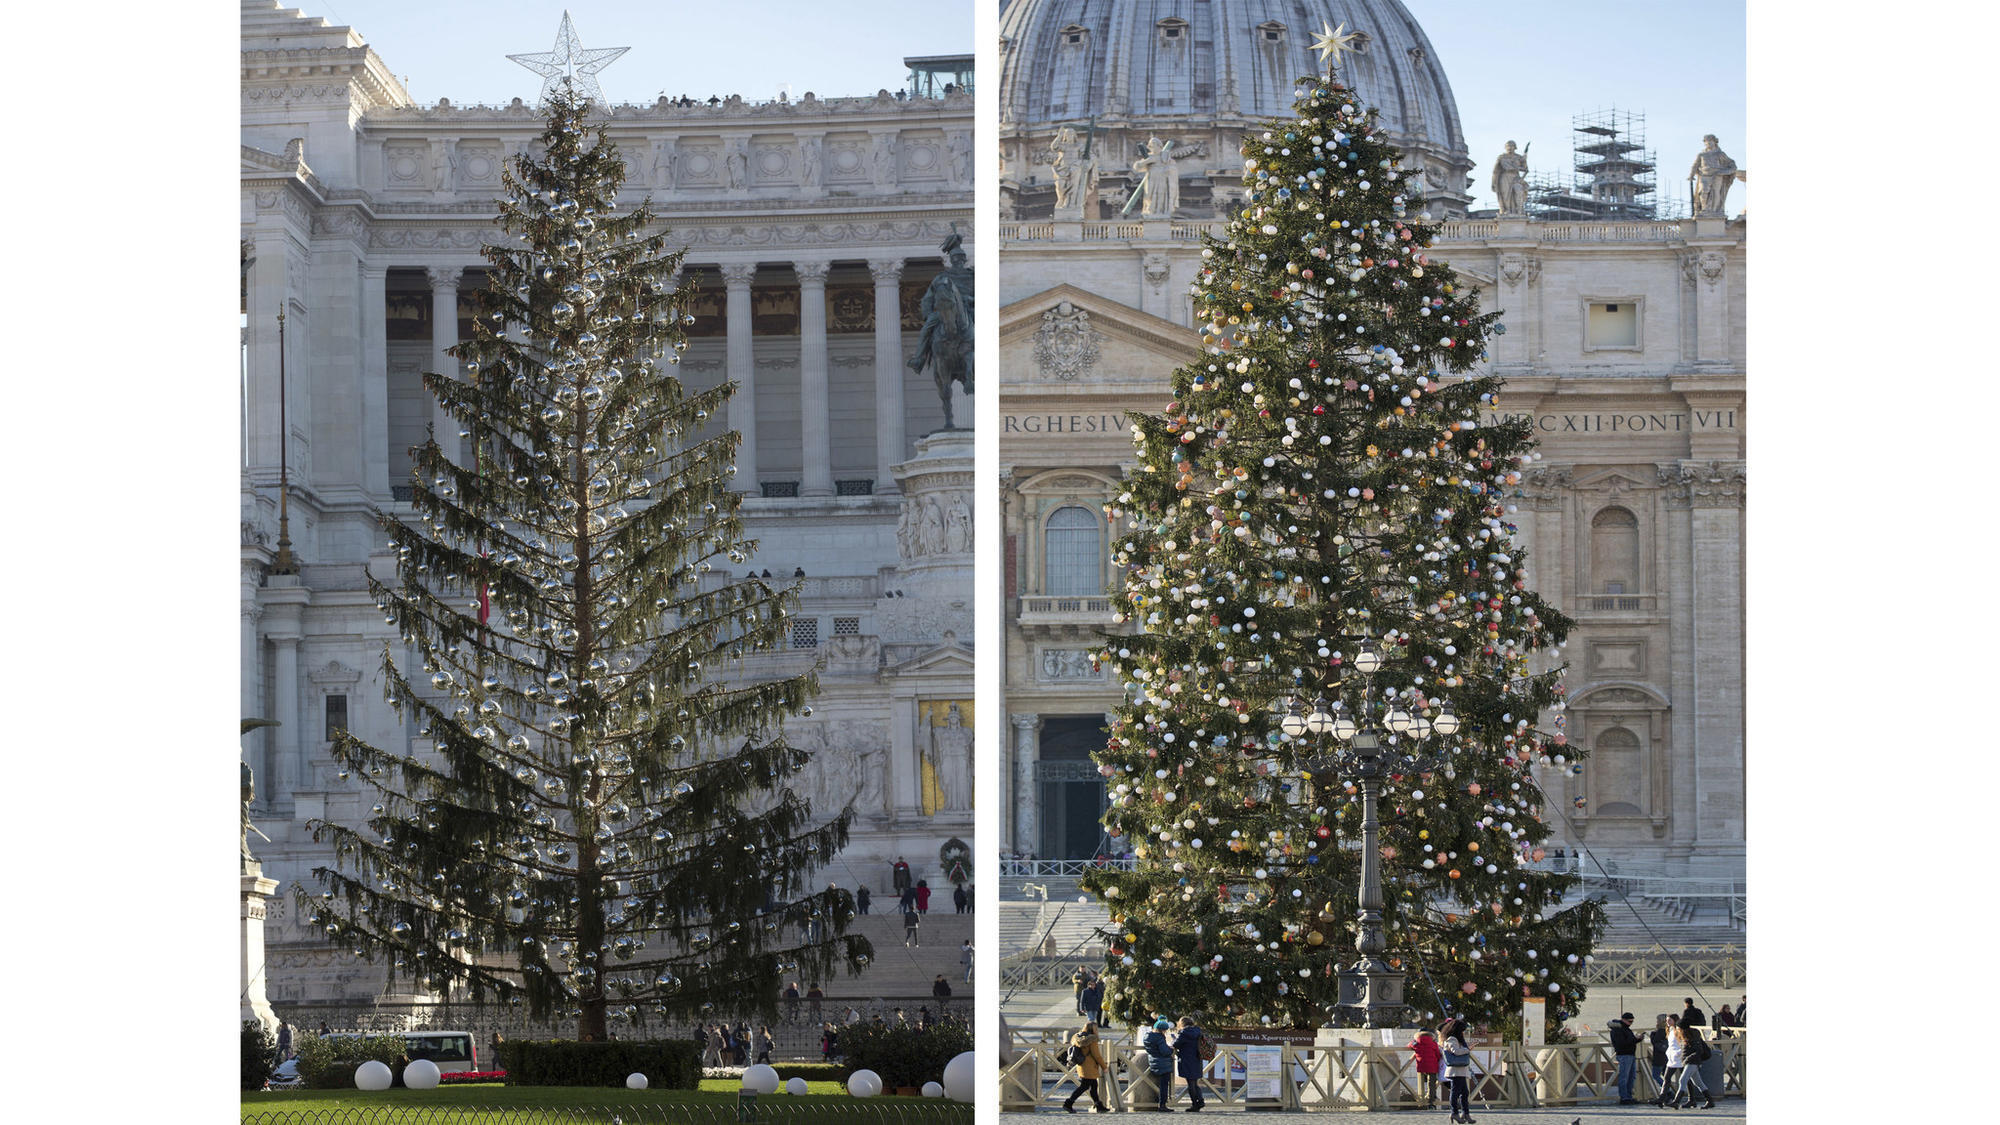 Rome's Official Christmas Tree Is Needled For Heavy